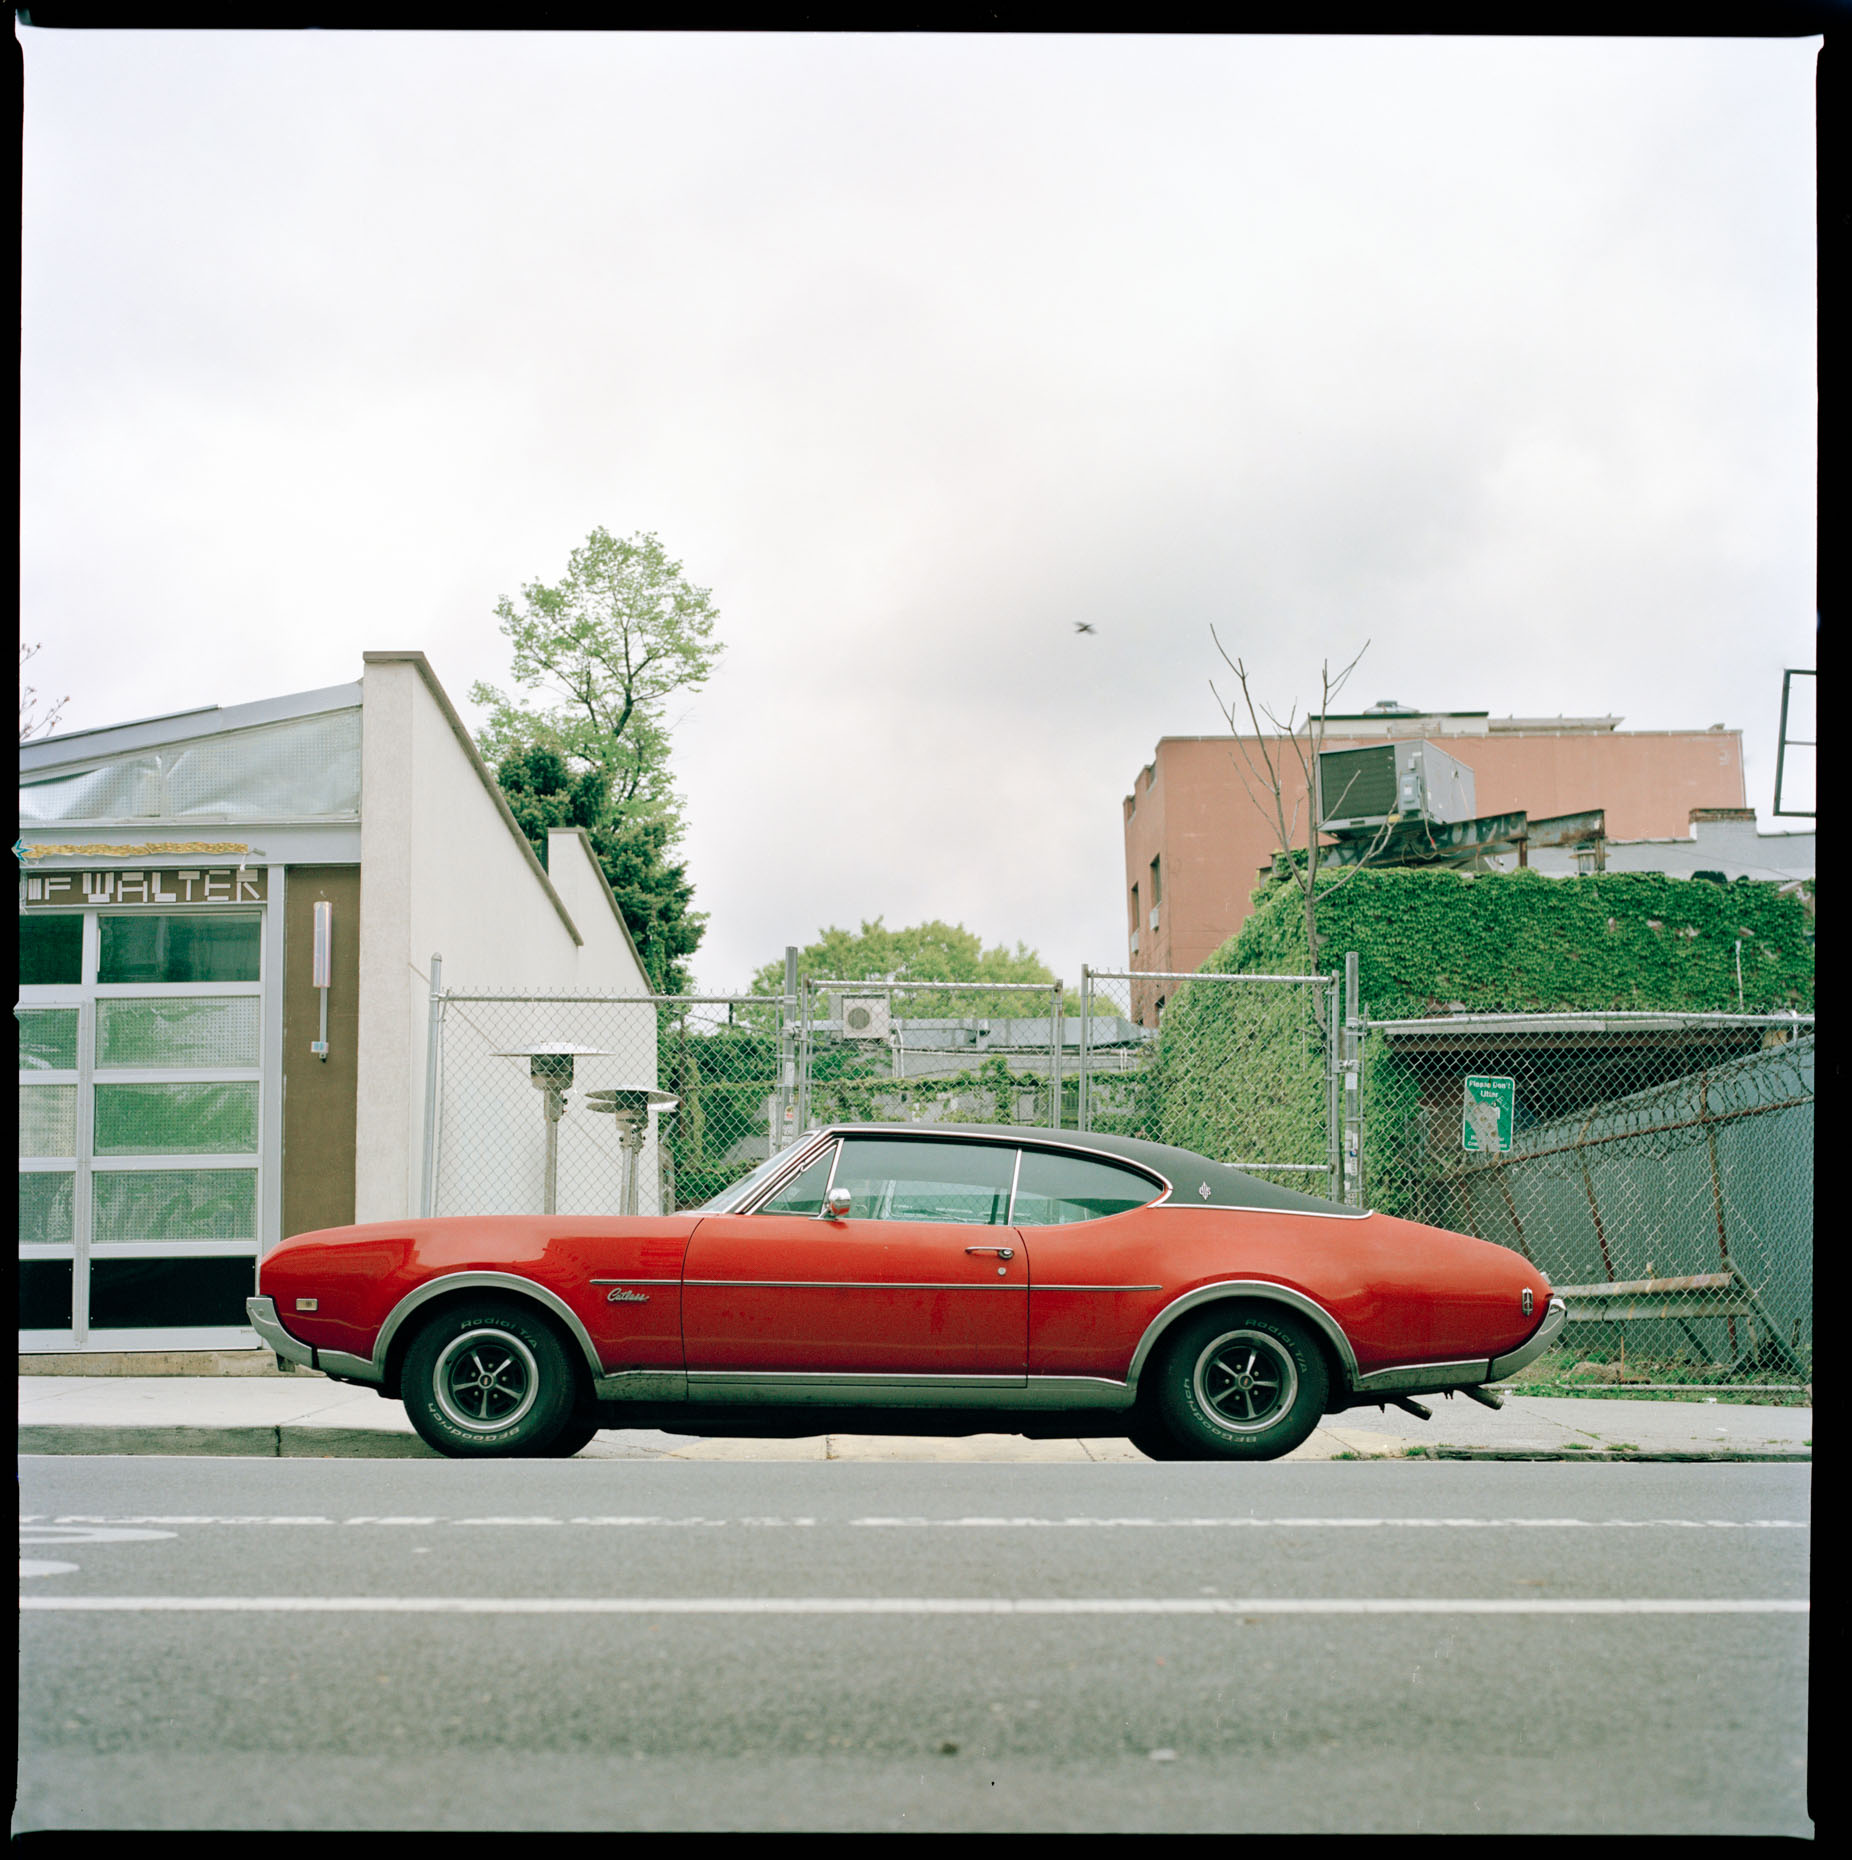 A Red Vitage Oldsmobile Cutlass car sits on a Williamsburg street in Brooklyn, New York.